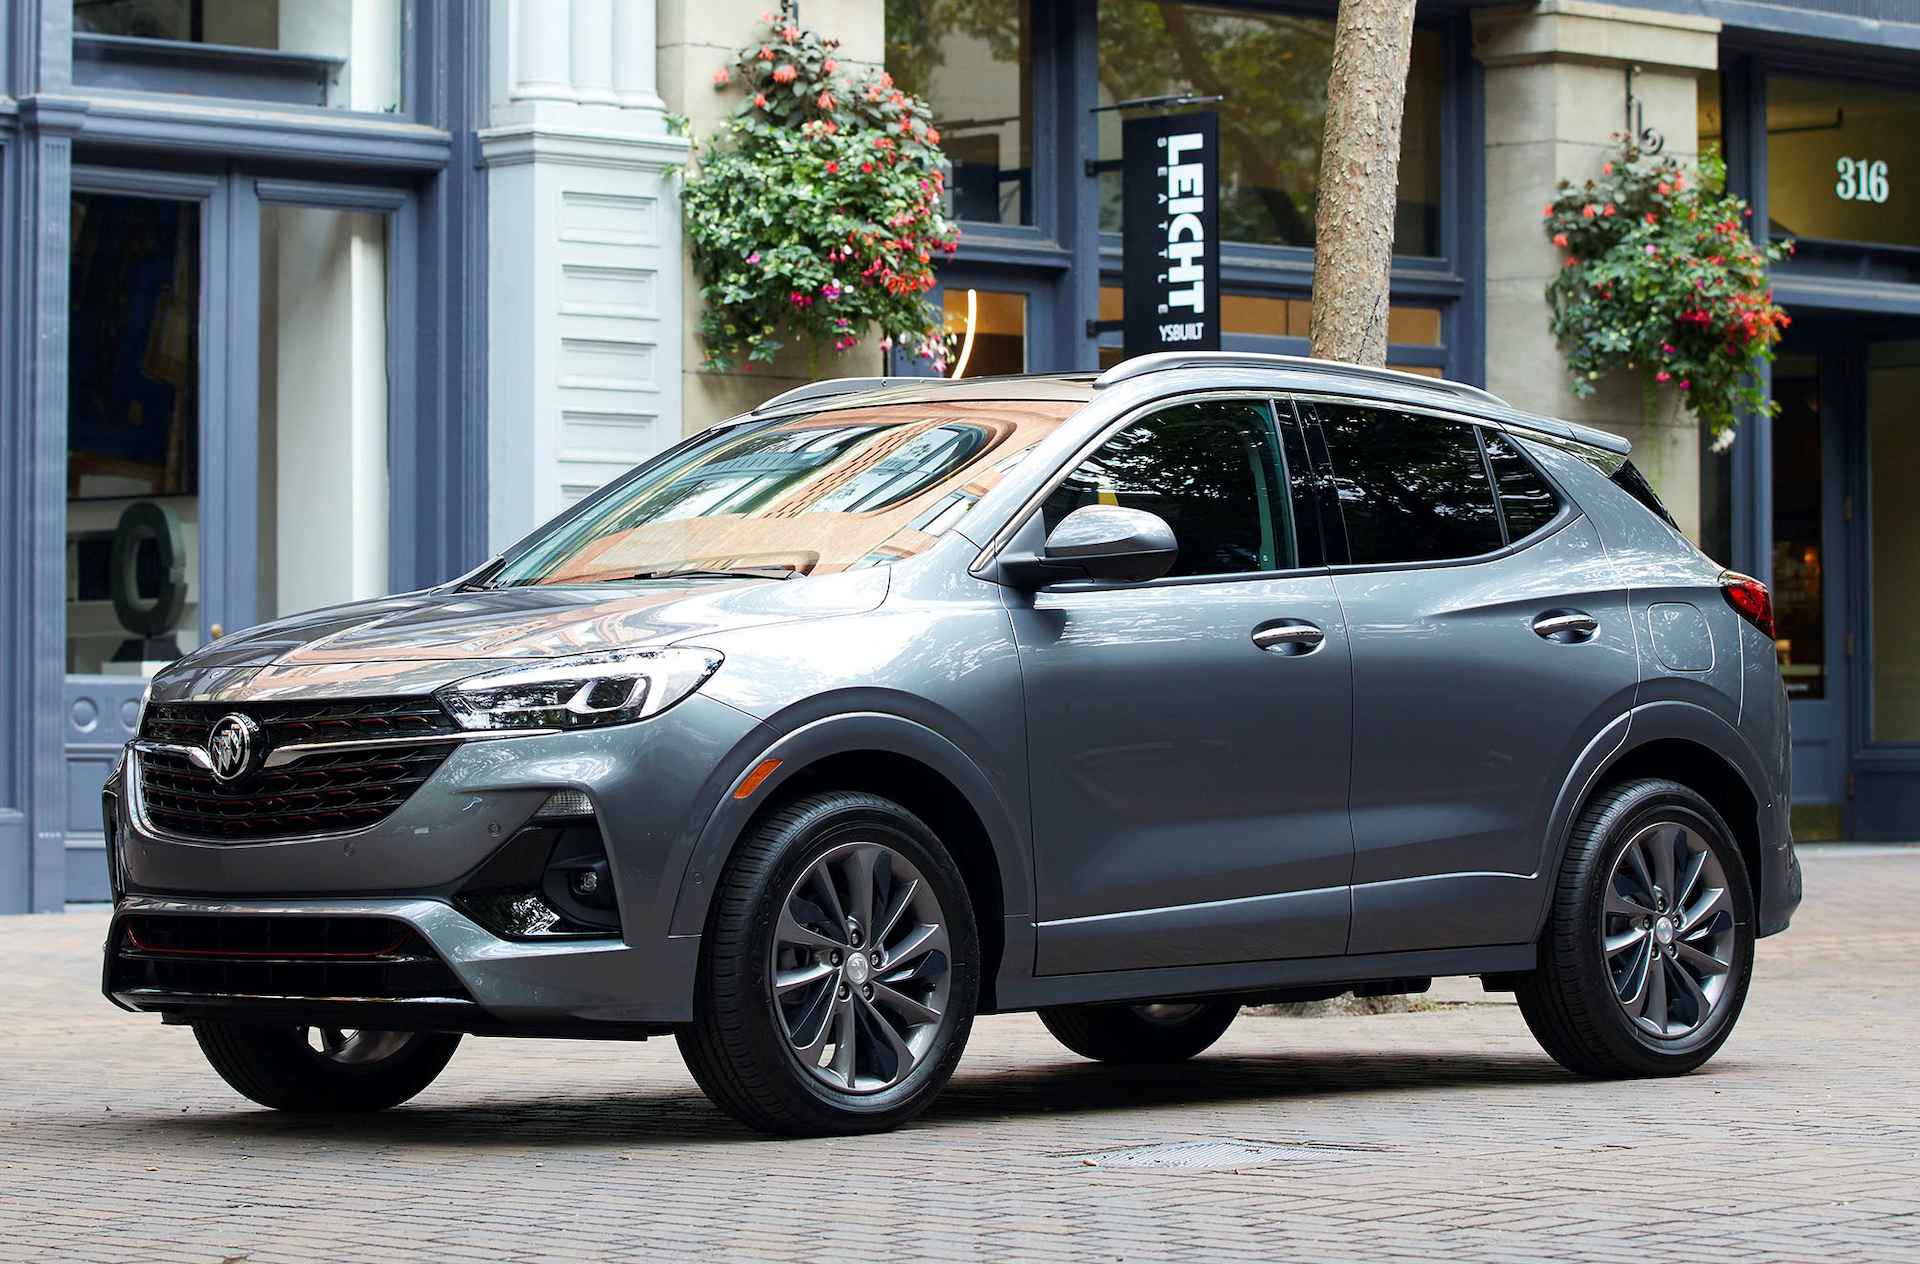 2021 Buick Encore Review, Ratings, Specs, Prices, And Photos New 2021 Buick Encore Reviews, Preferred, Price